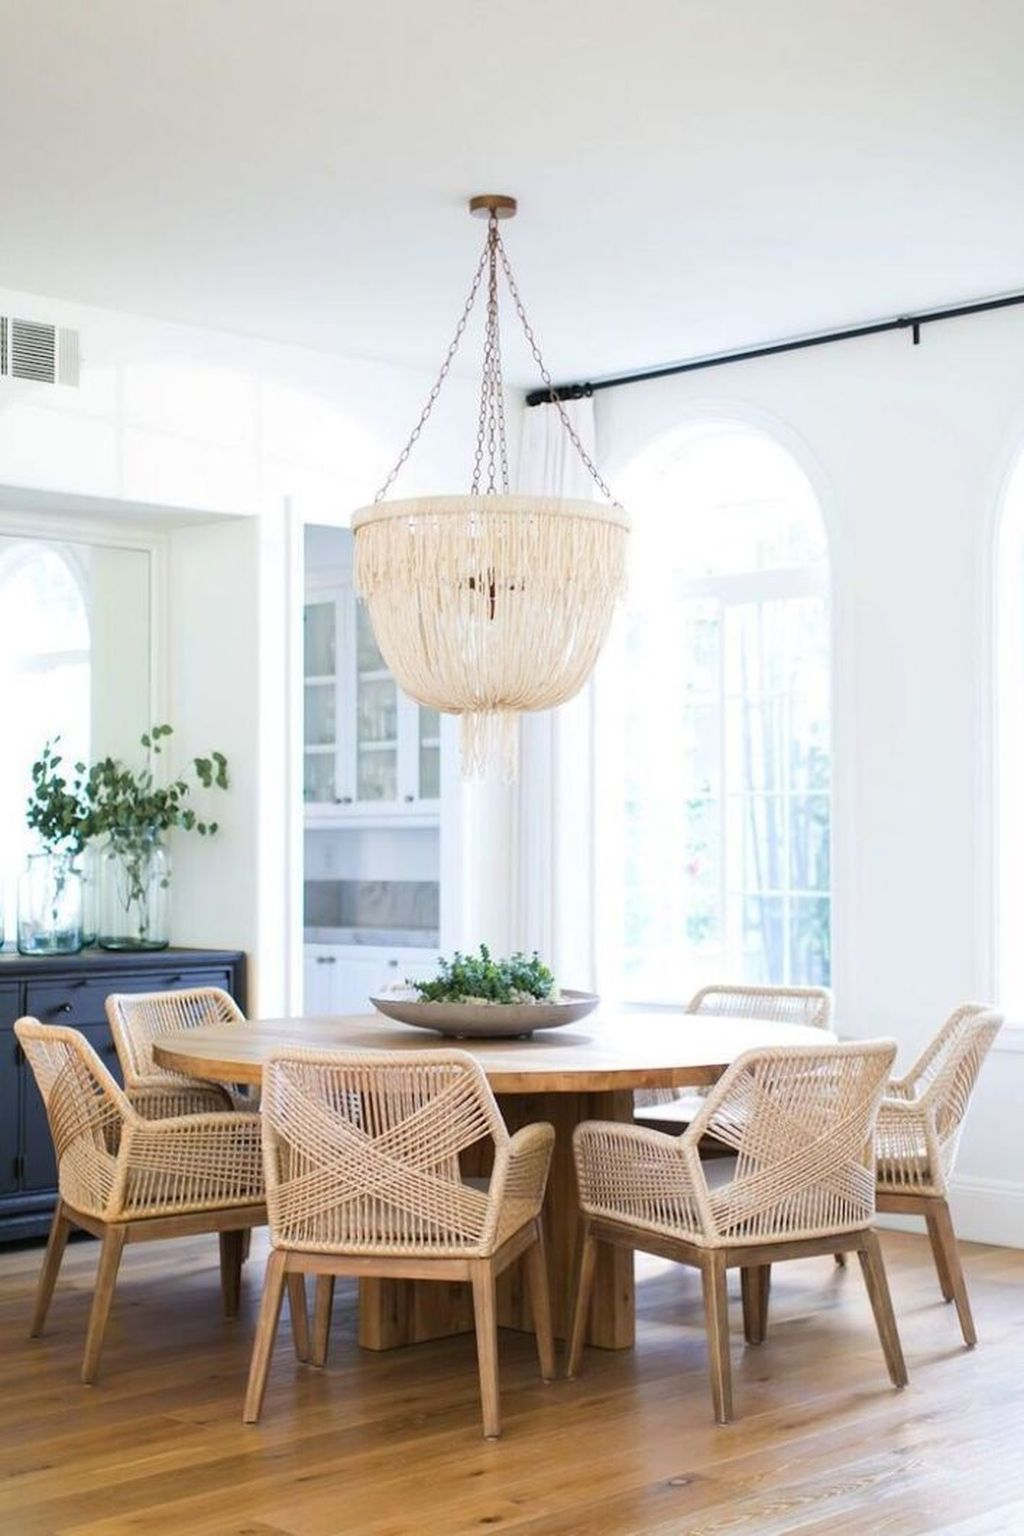 Best Summer Interior Design Ideas To Beautify Your Home 24